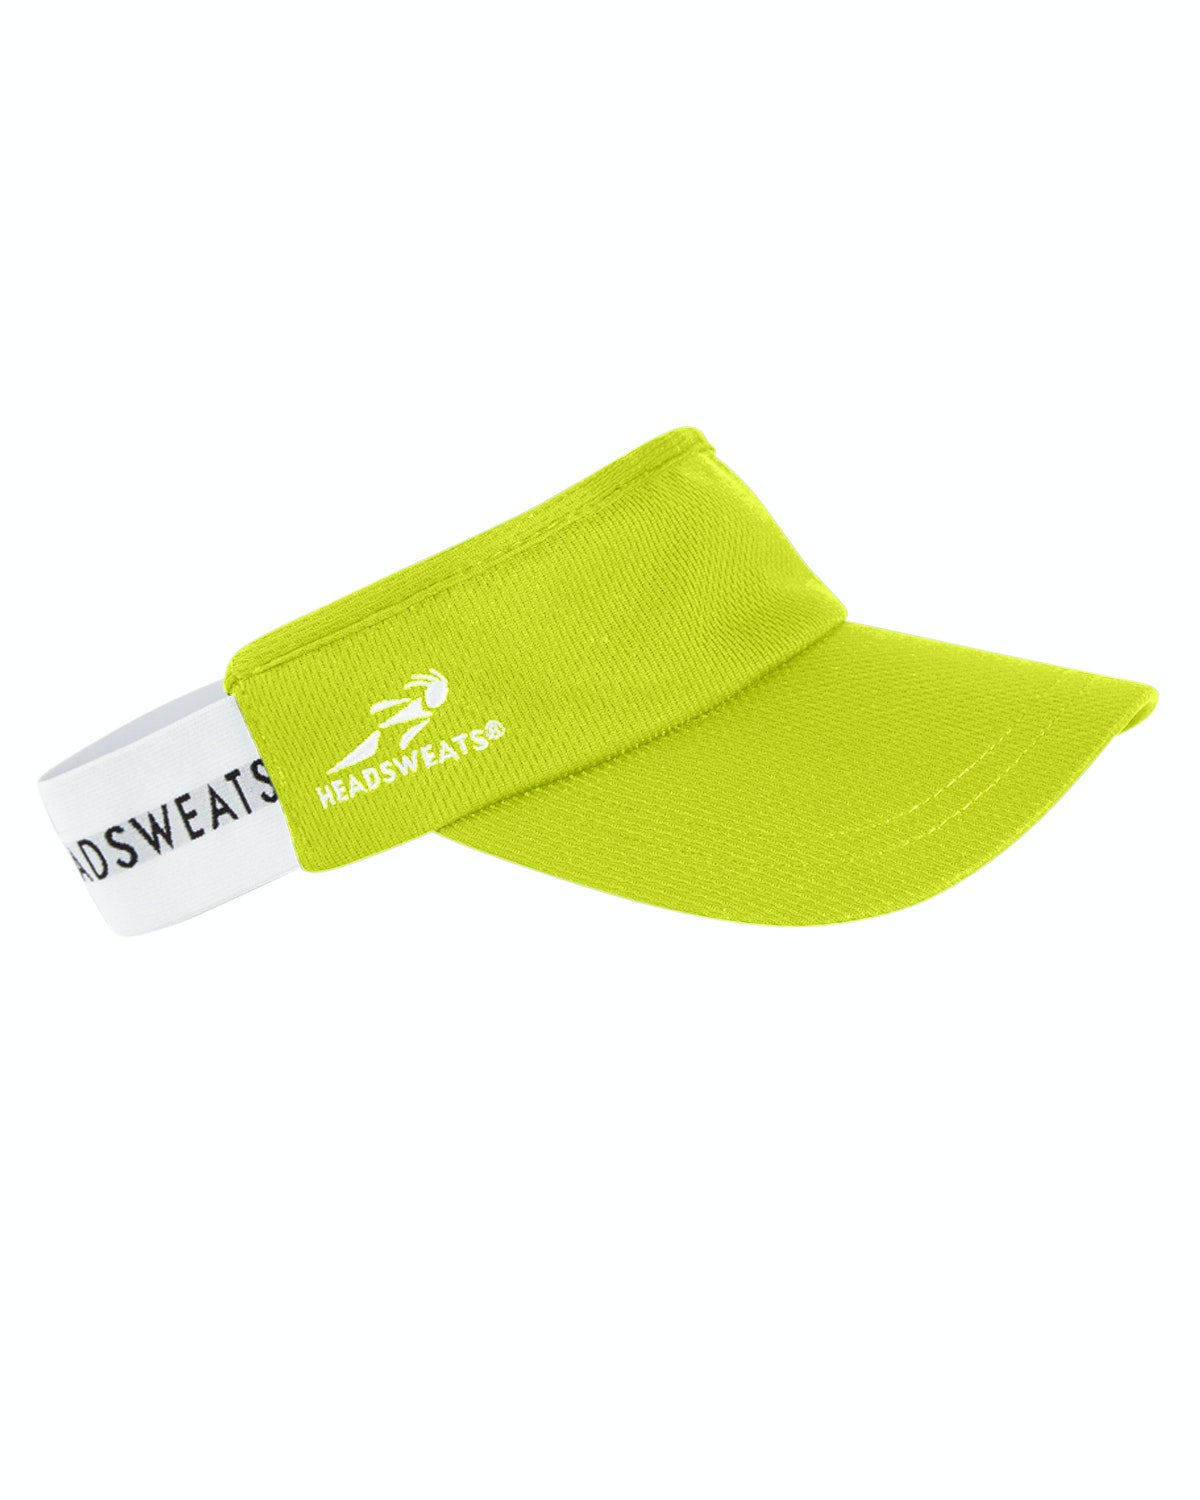 HDSW02 - Sport Safety Yellow